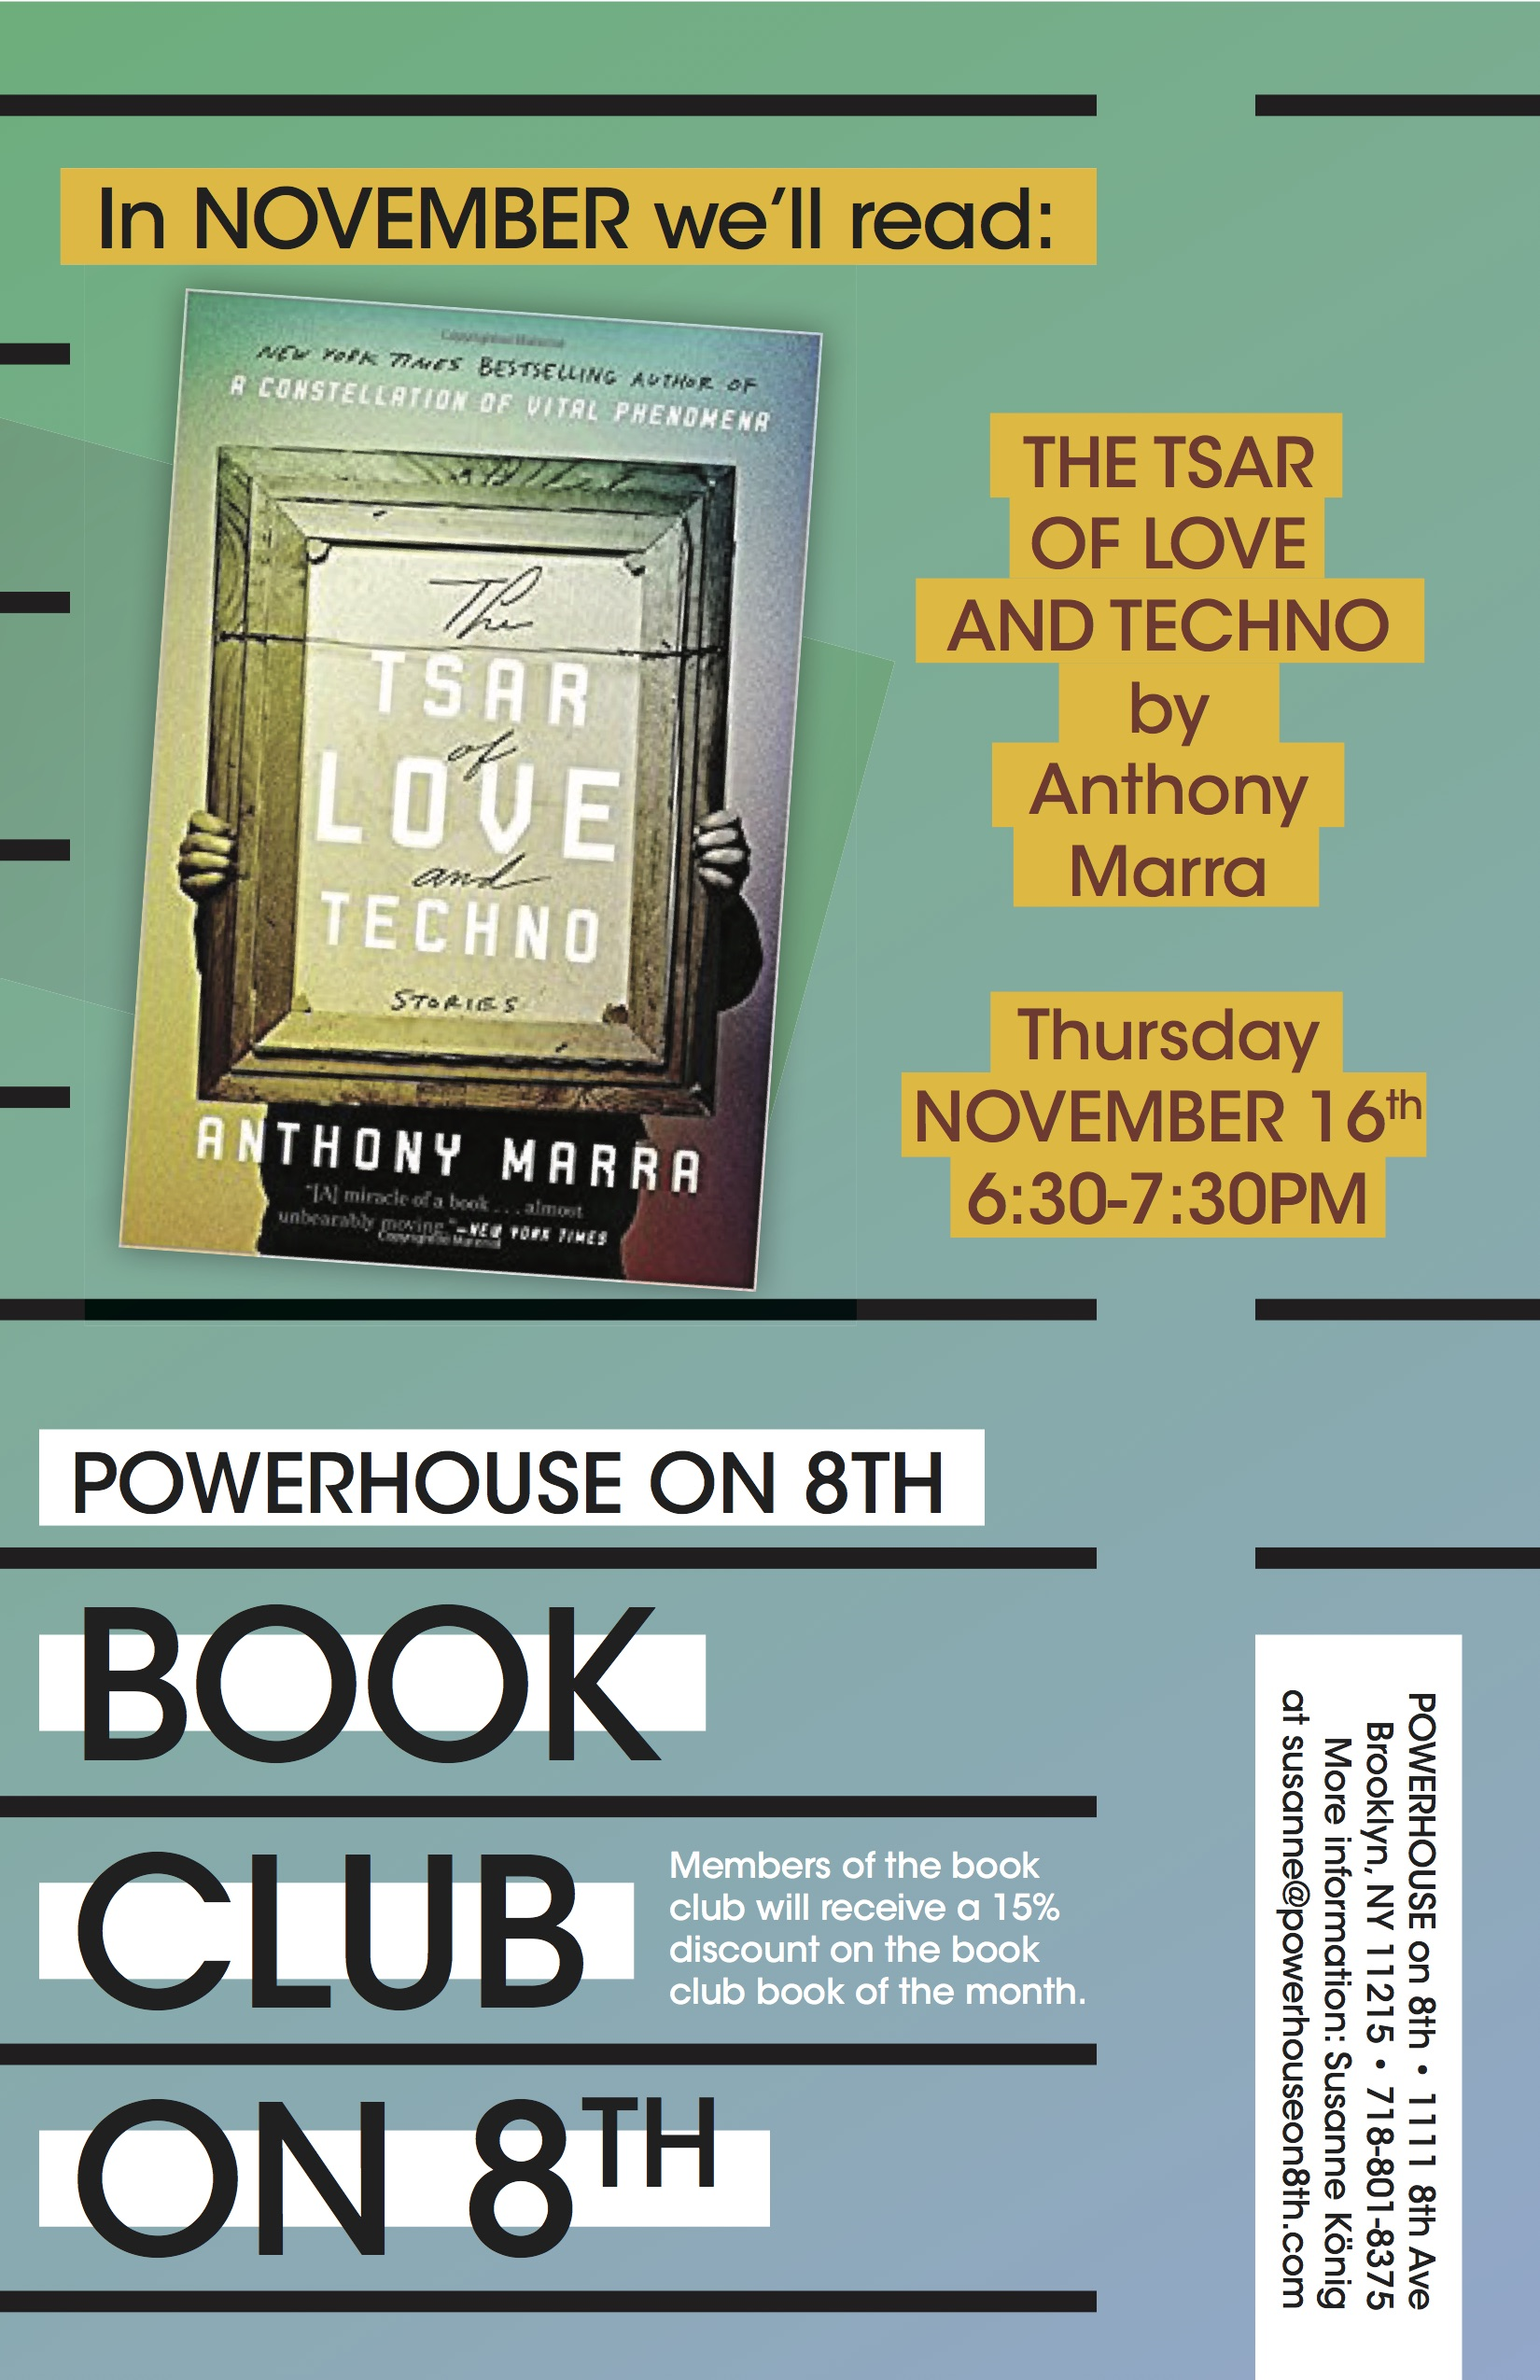 Book Club on 8th: The Tsar of Love by Anthony Marra